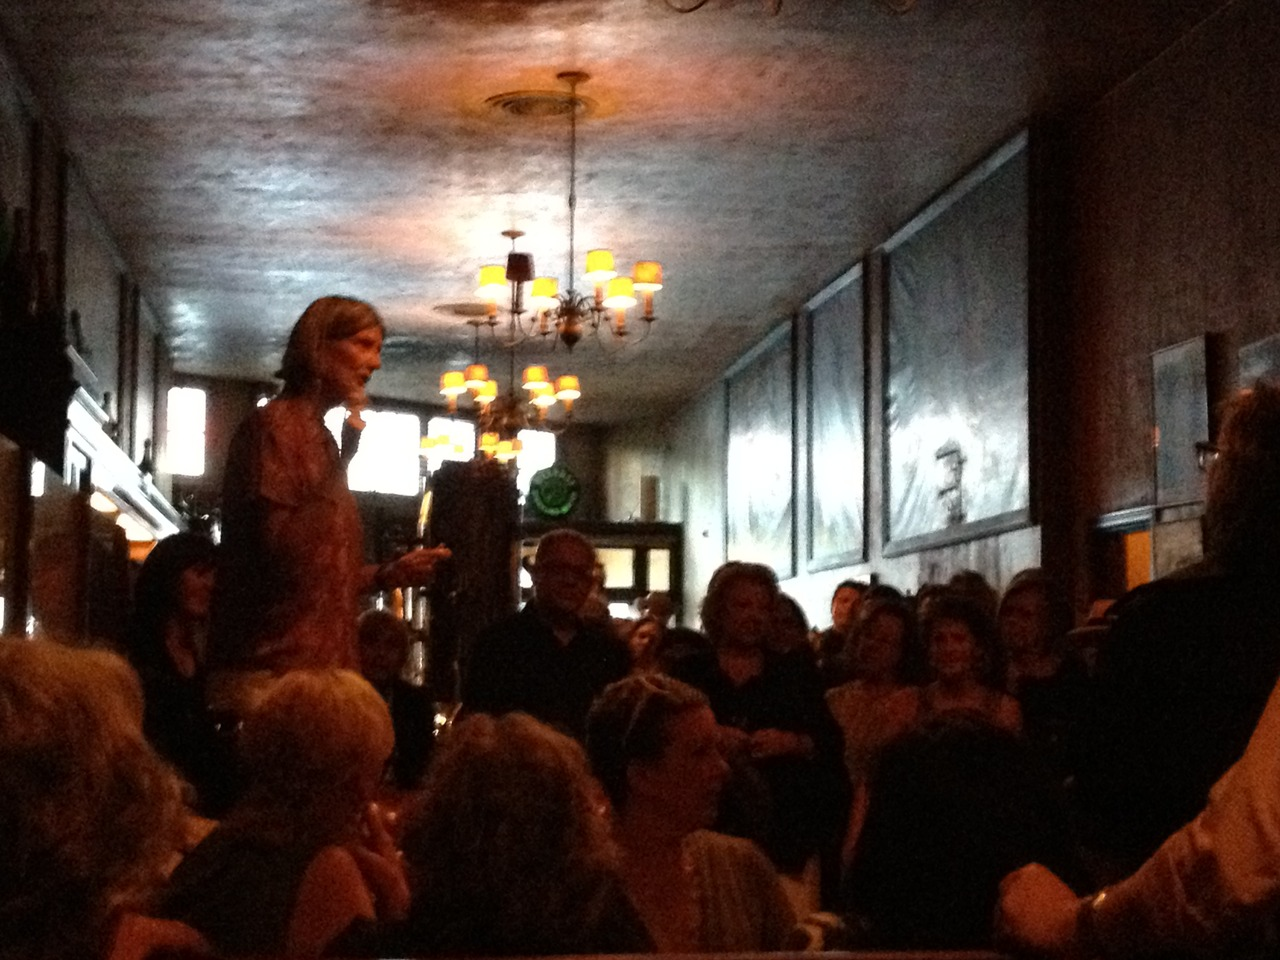 Hilary Hart speaks to a packed room at Tosca last night, gathered to wish her farewell from SFFS. We'll miss you, Hilary. Don't be a stranger.